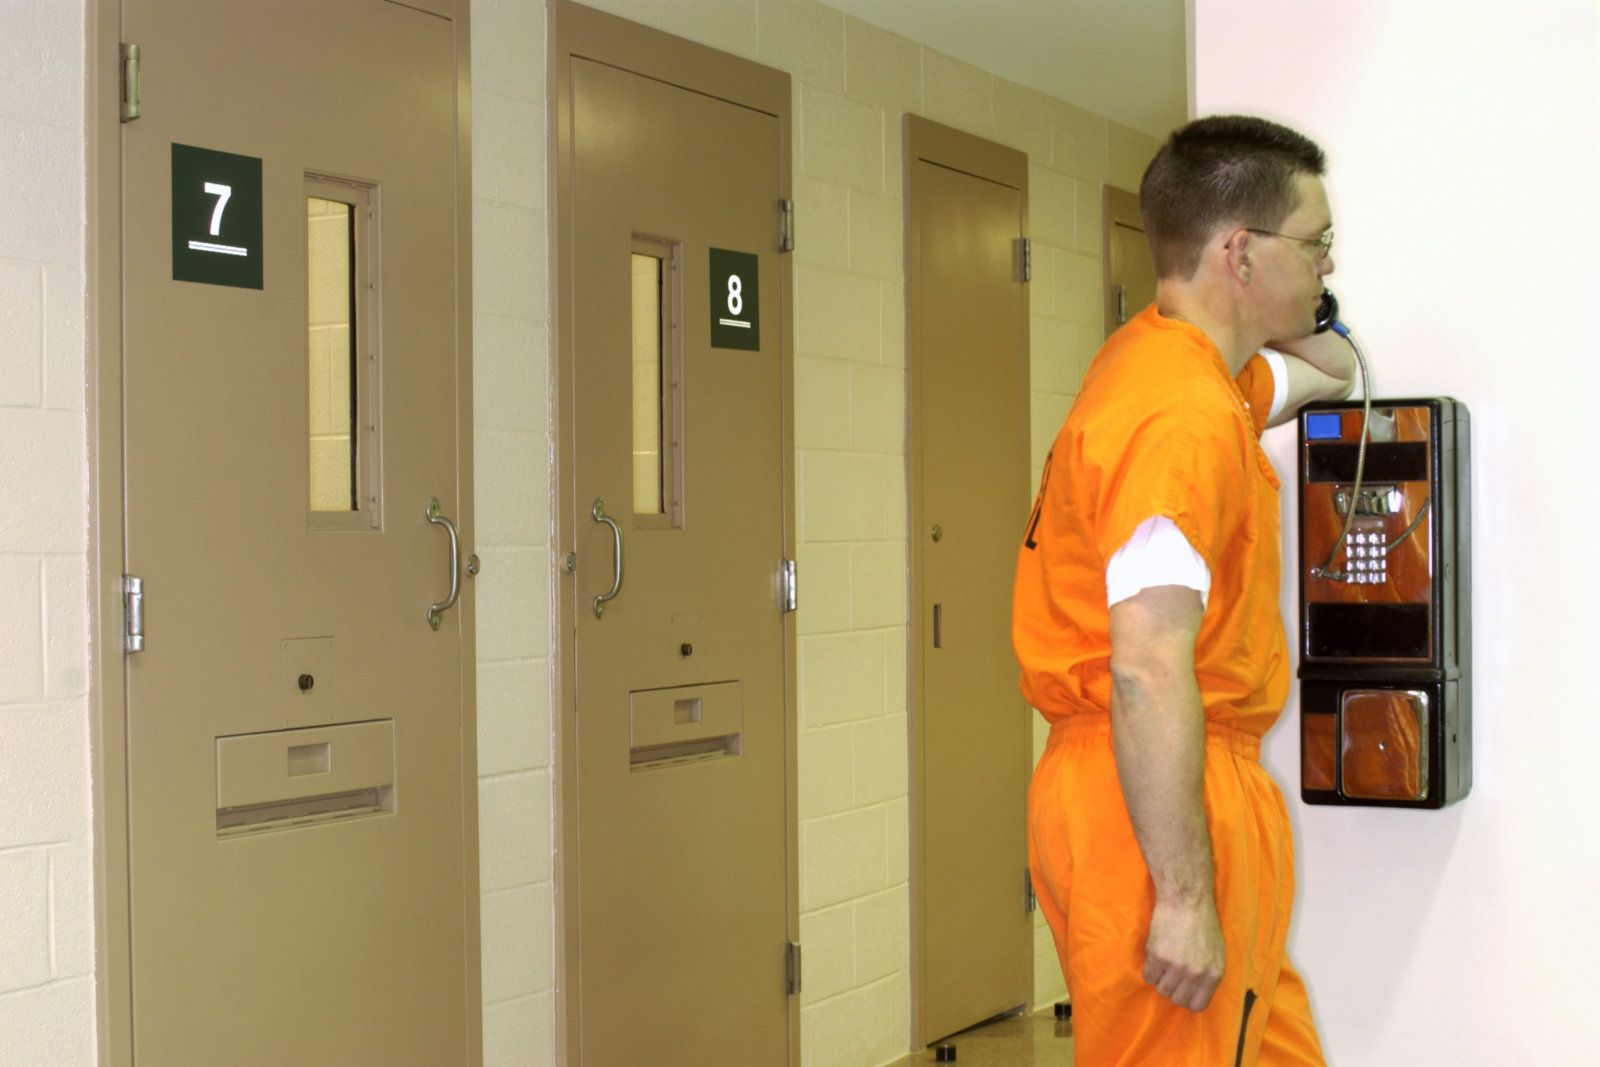 Prison inmate calling companies - The Fcc Can T Limit Excessive Inmate Phone Call Rates Phone Companiesprisonthe